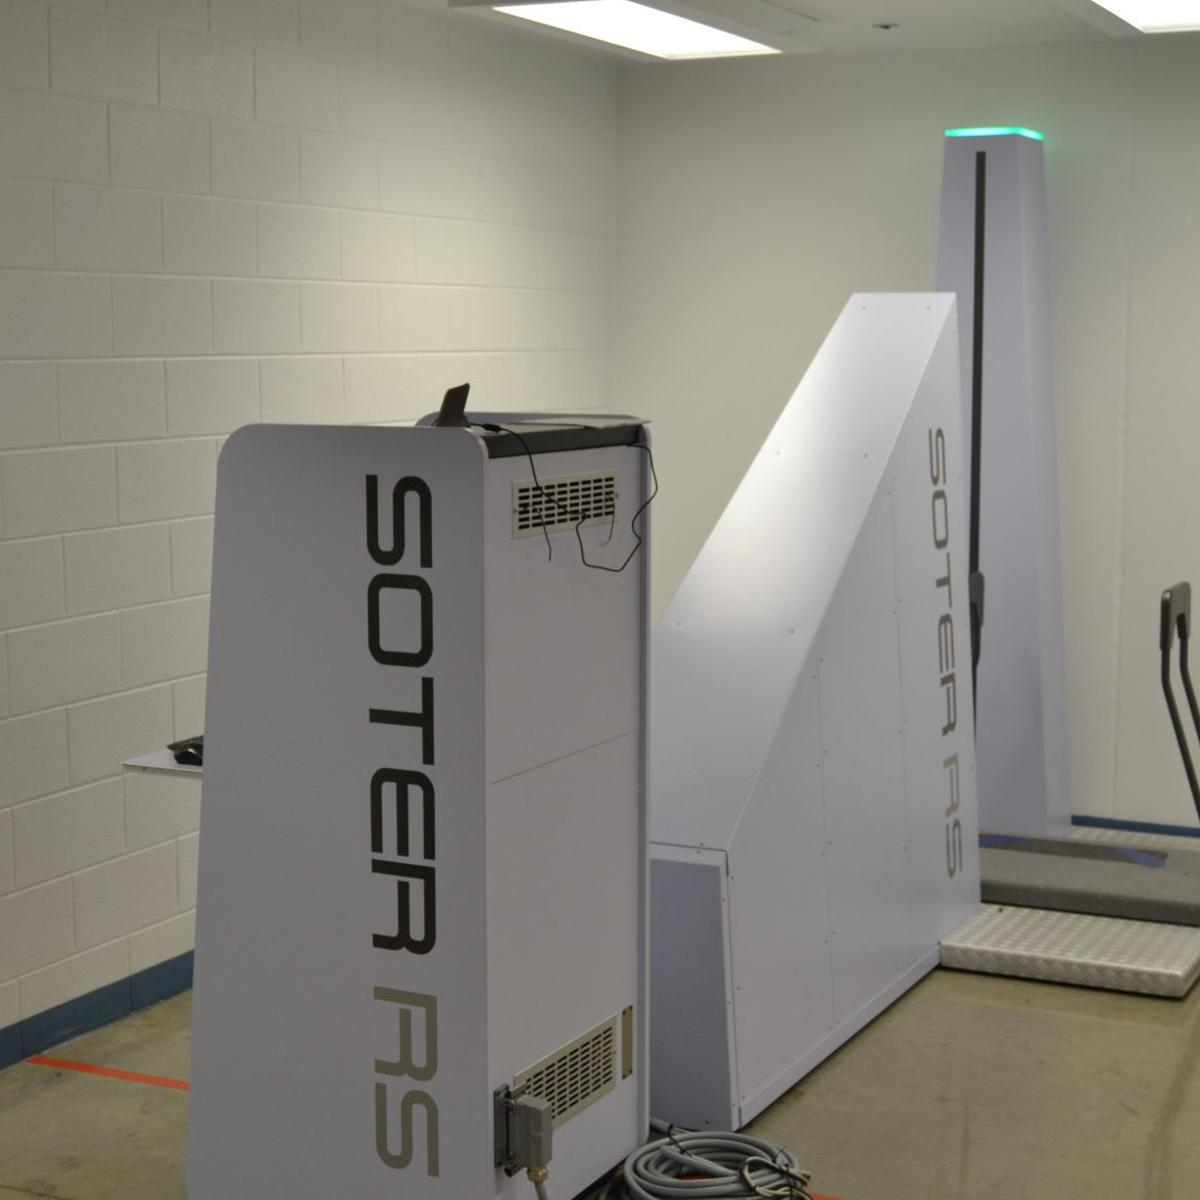 Regional jail rolls out new X-ray body scanner | Crime